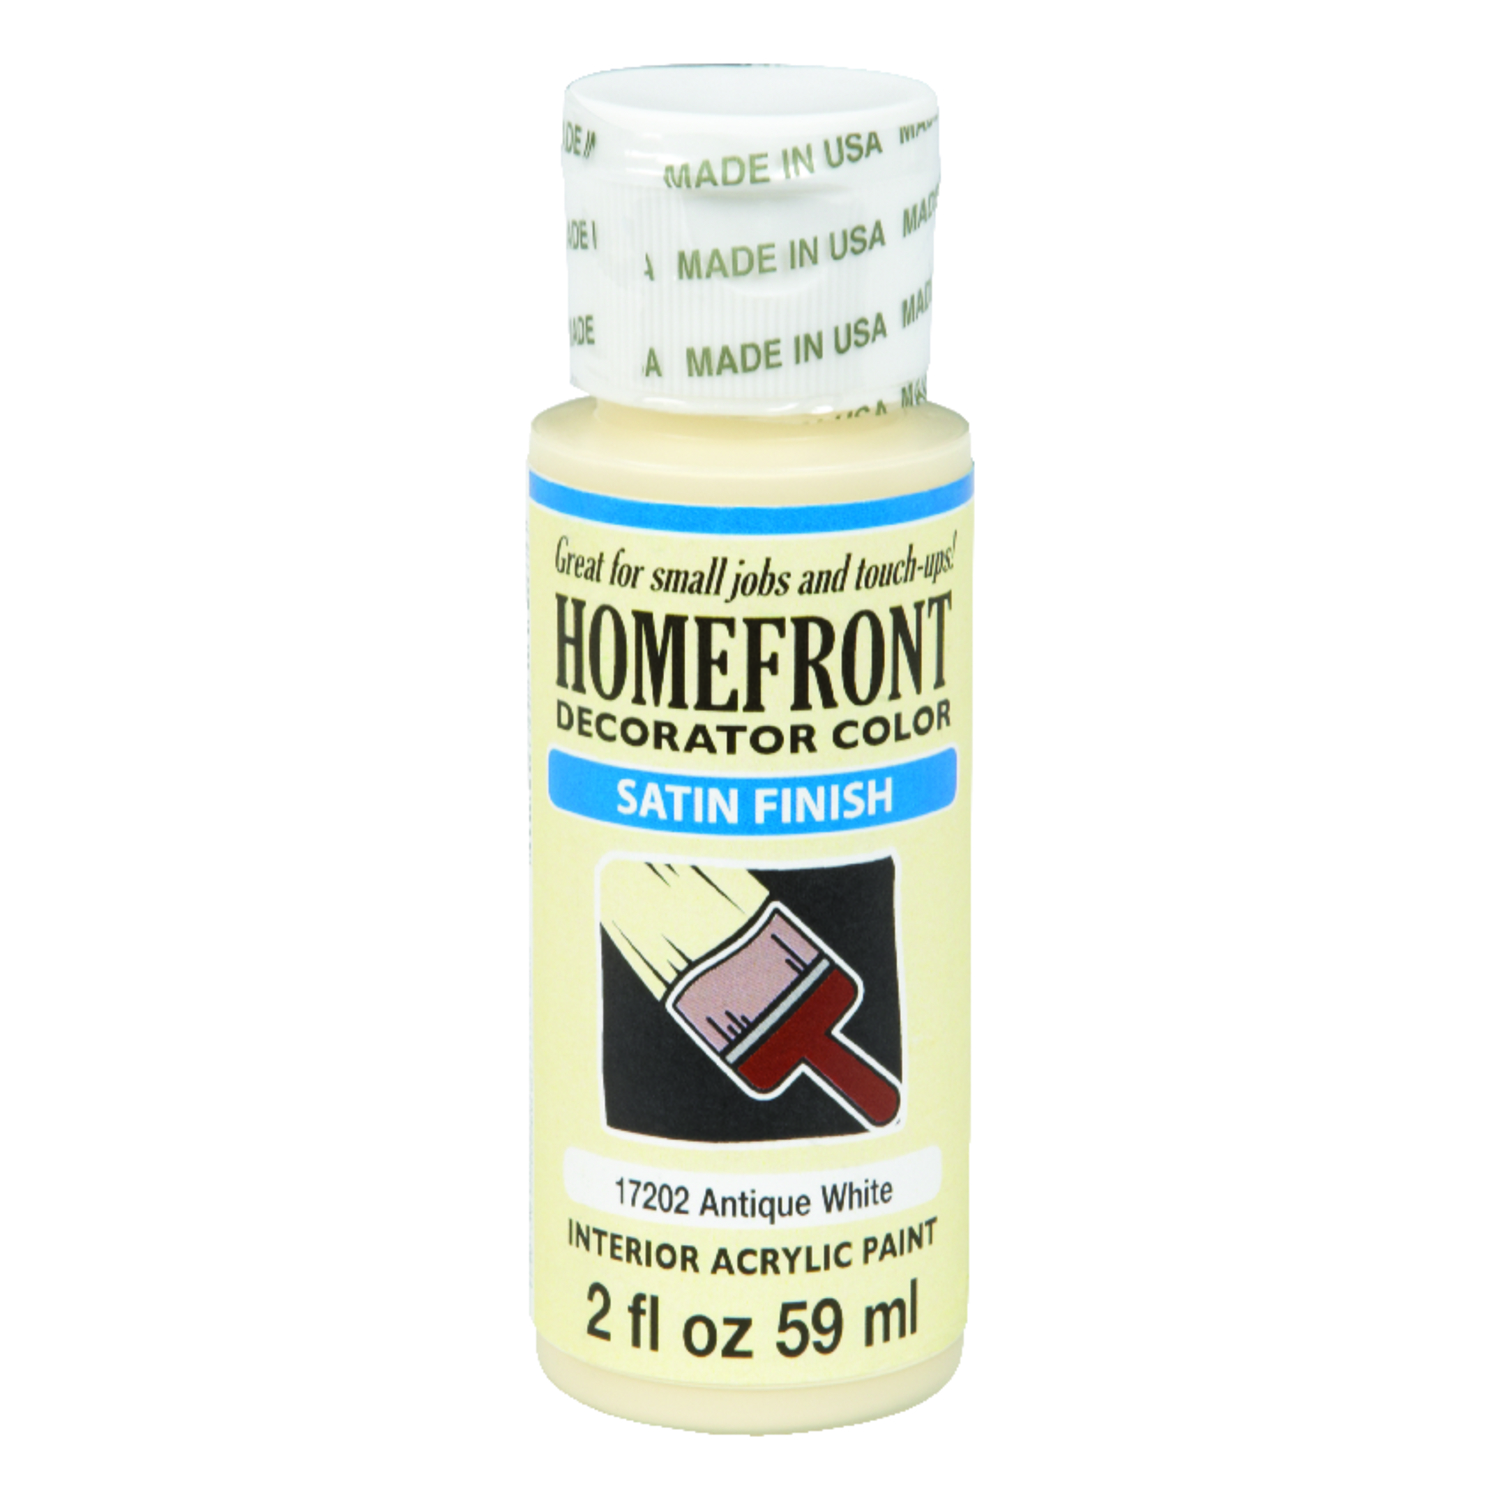 Homefront  Decorator Color  Satin  Antique White  Hobby Paint  2 oz. Acrylic Latex